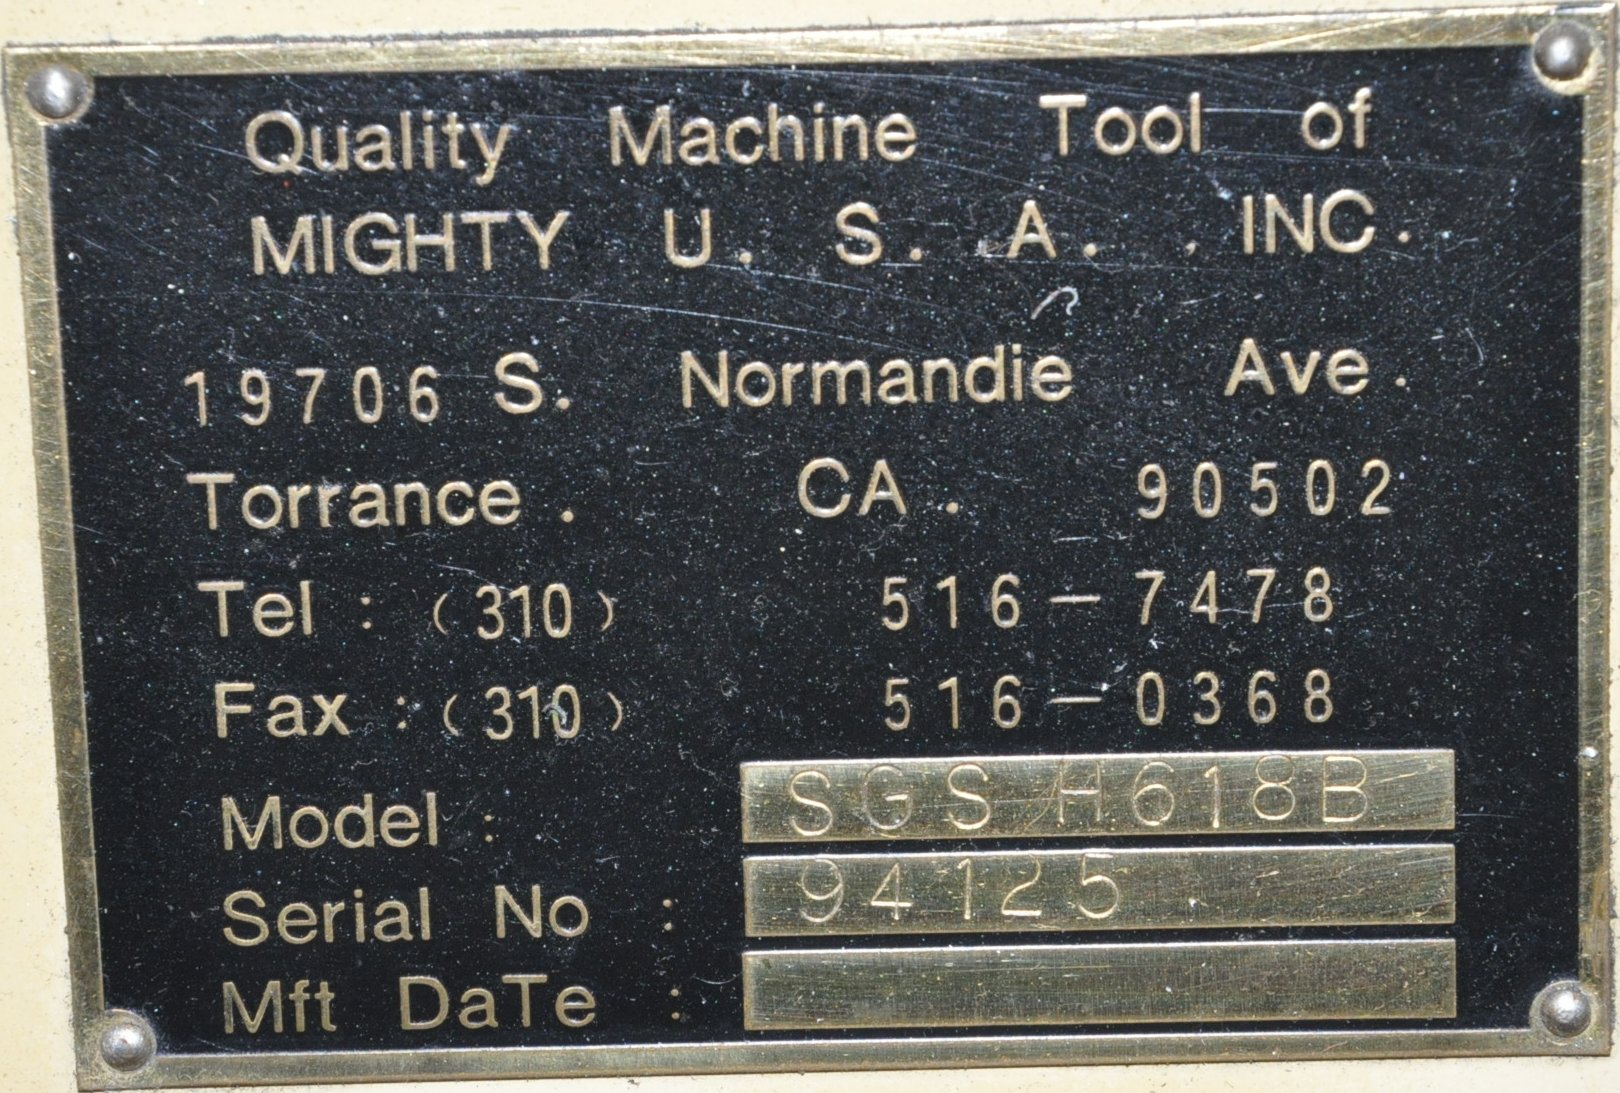 """Mighty Freeport Model SGS H618B, 6"""" x 18"""" Hand Feed Surface Grinder - Image 3 of 3"""